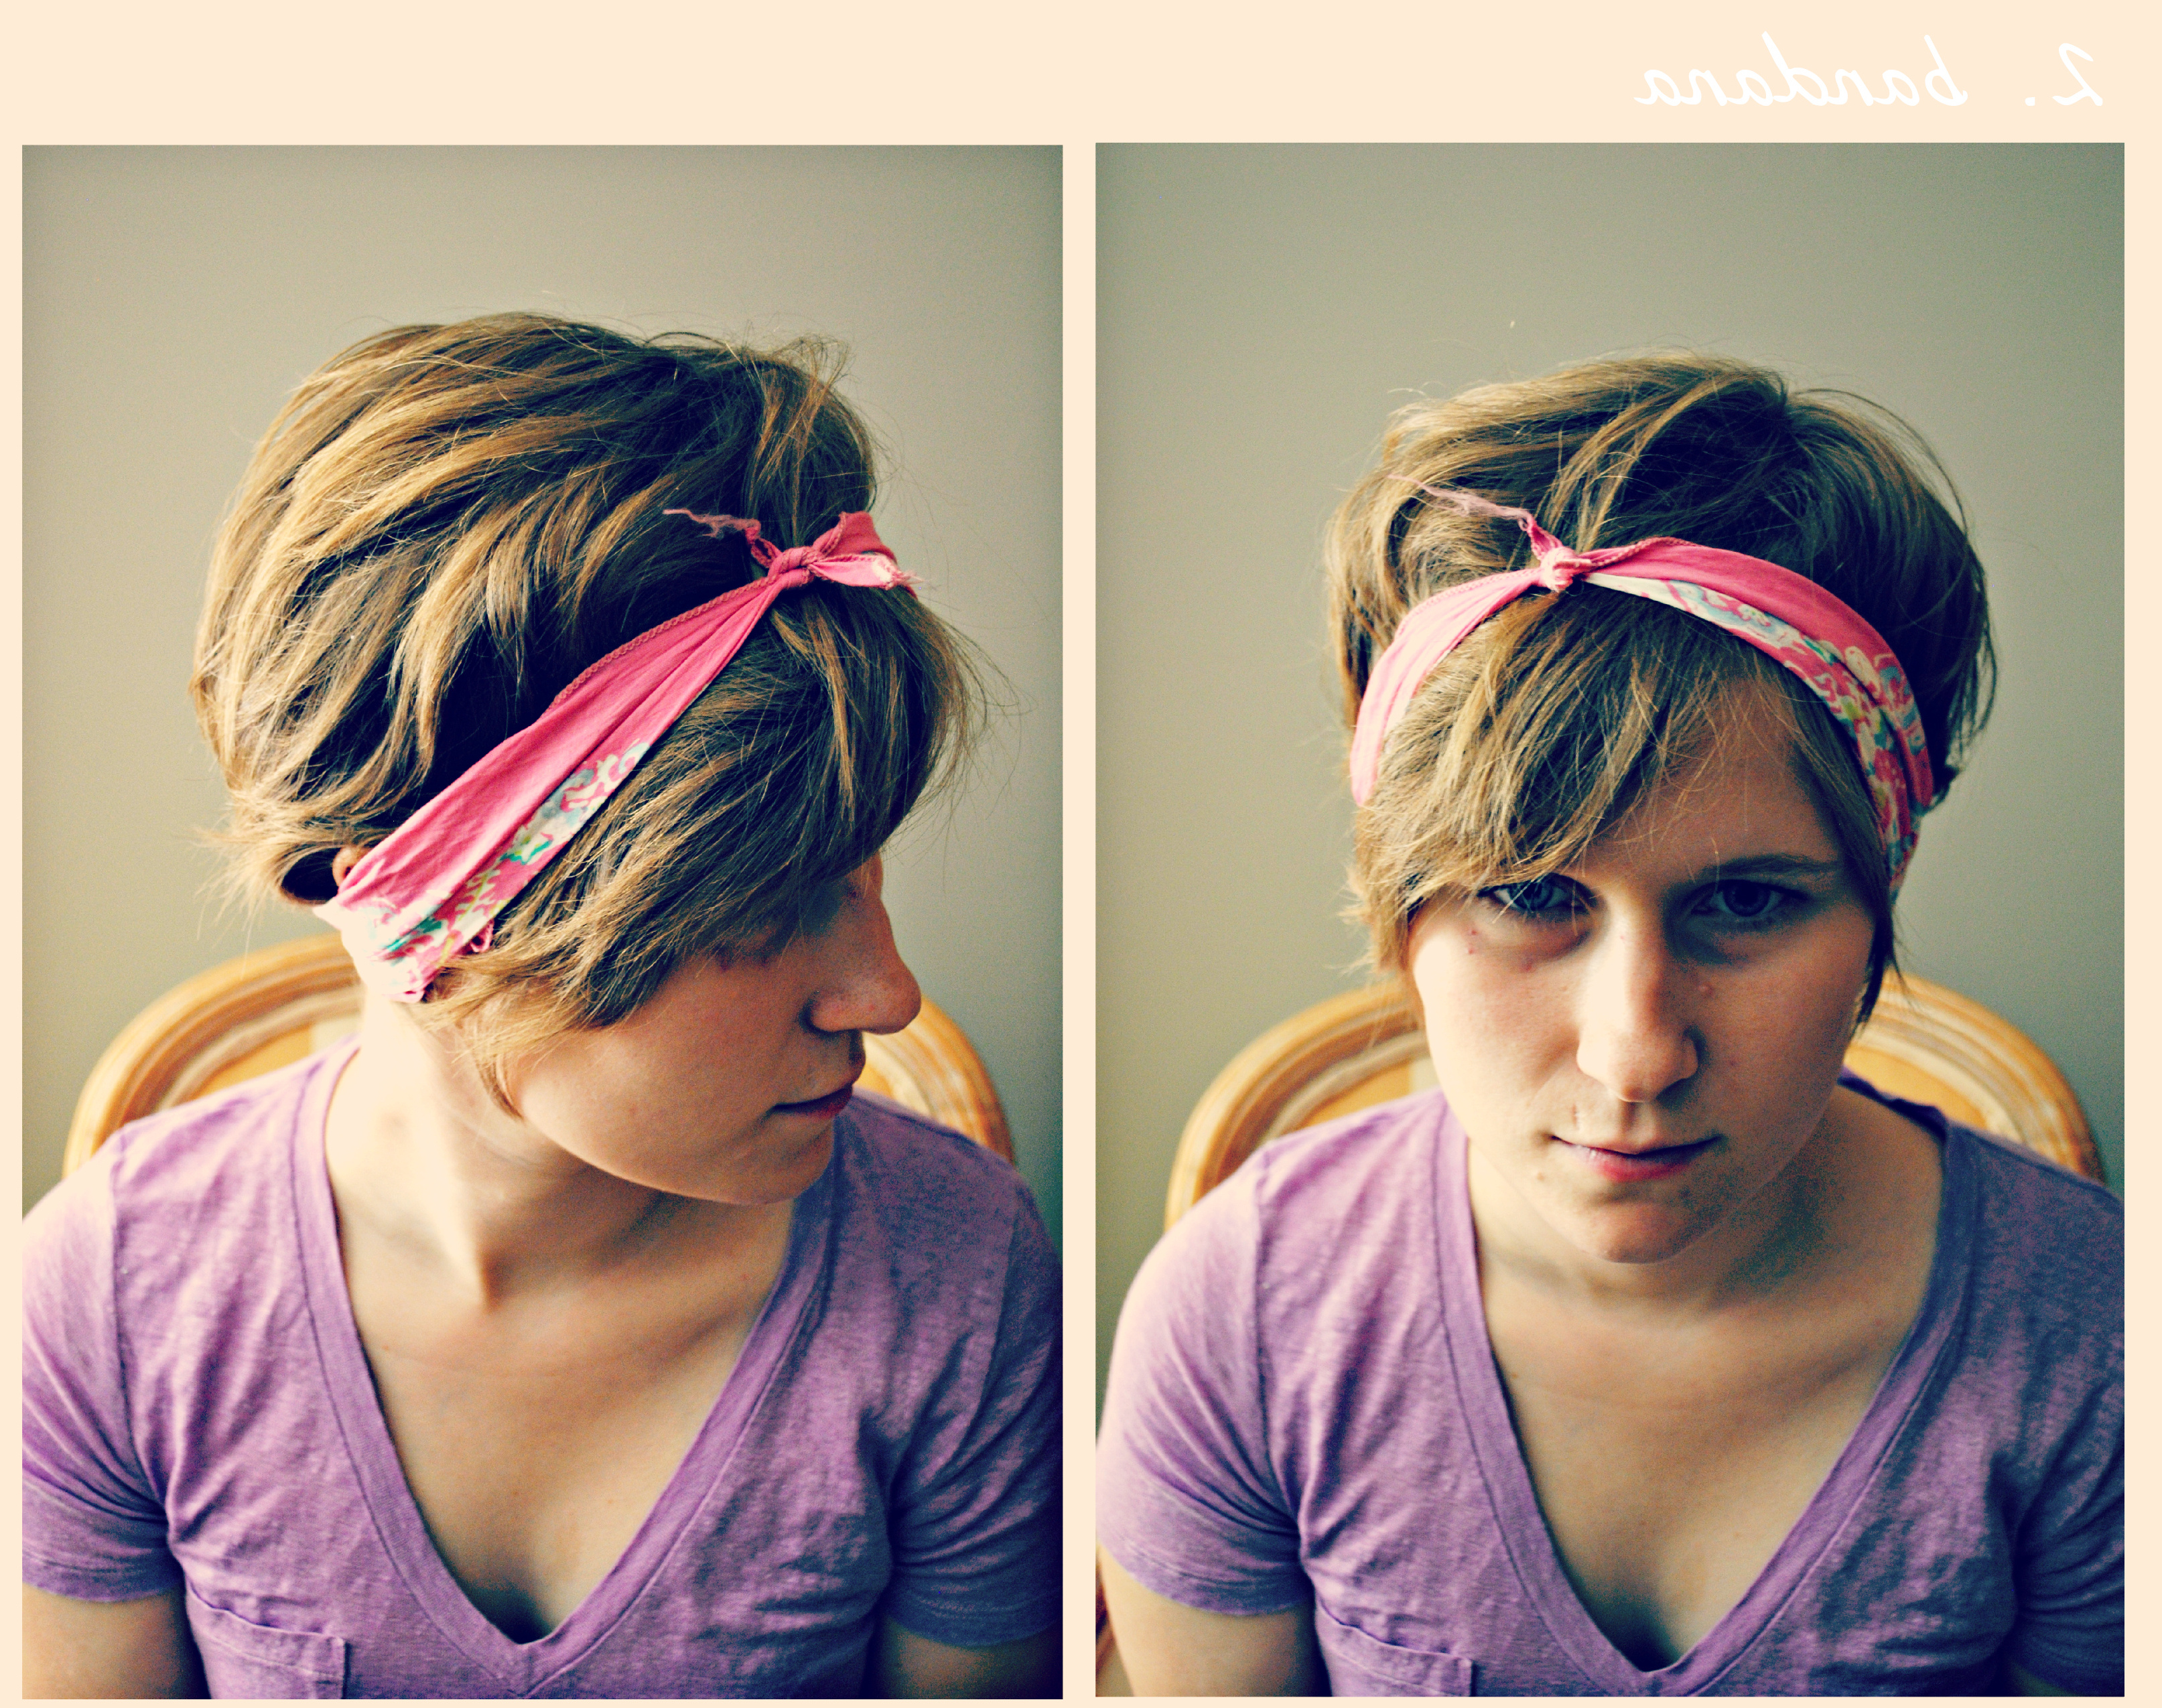 How To Style Short Hair | Pertaining To Short Hairstyles With Headbands (View 17 of 25)